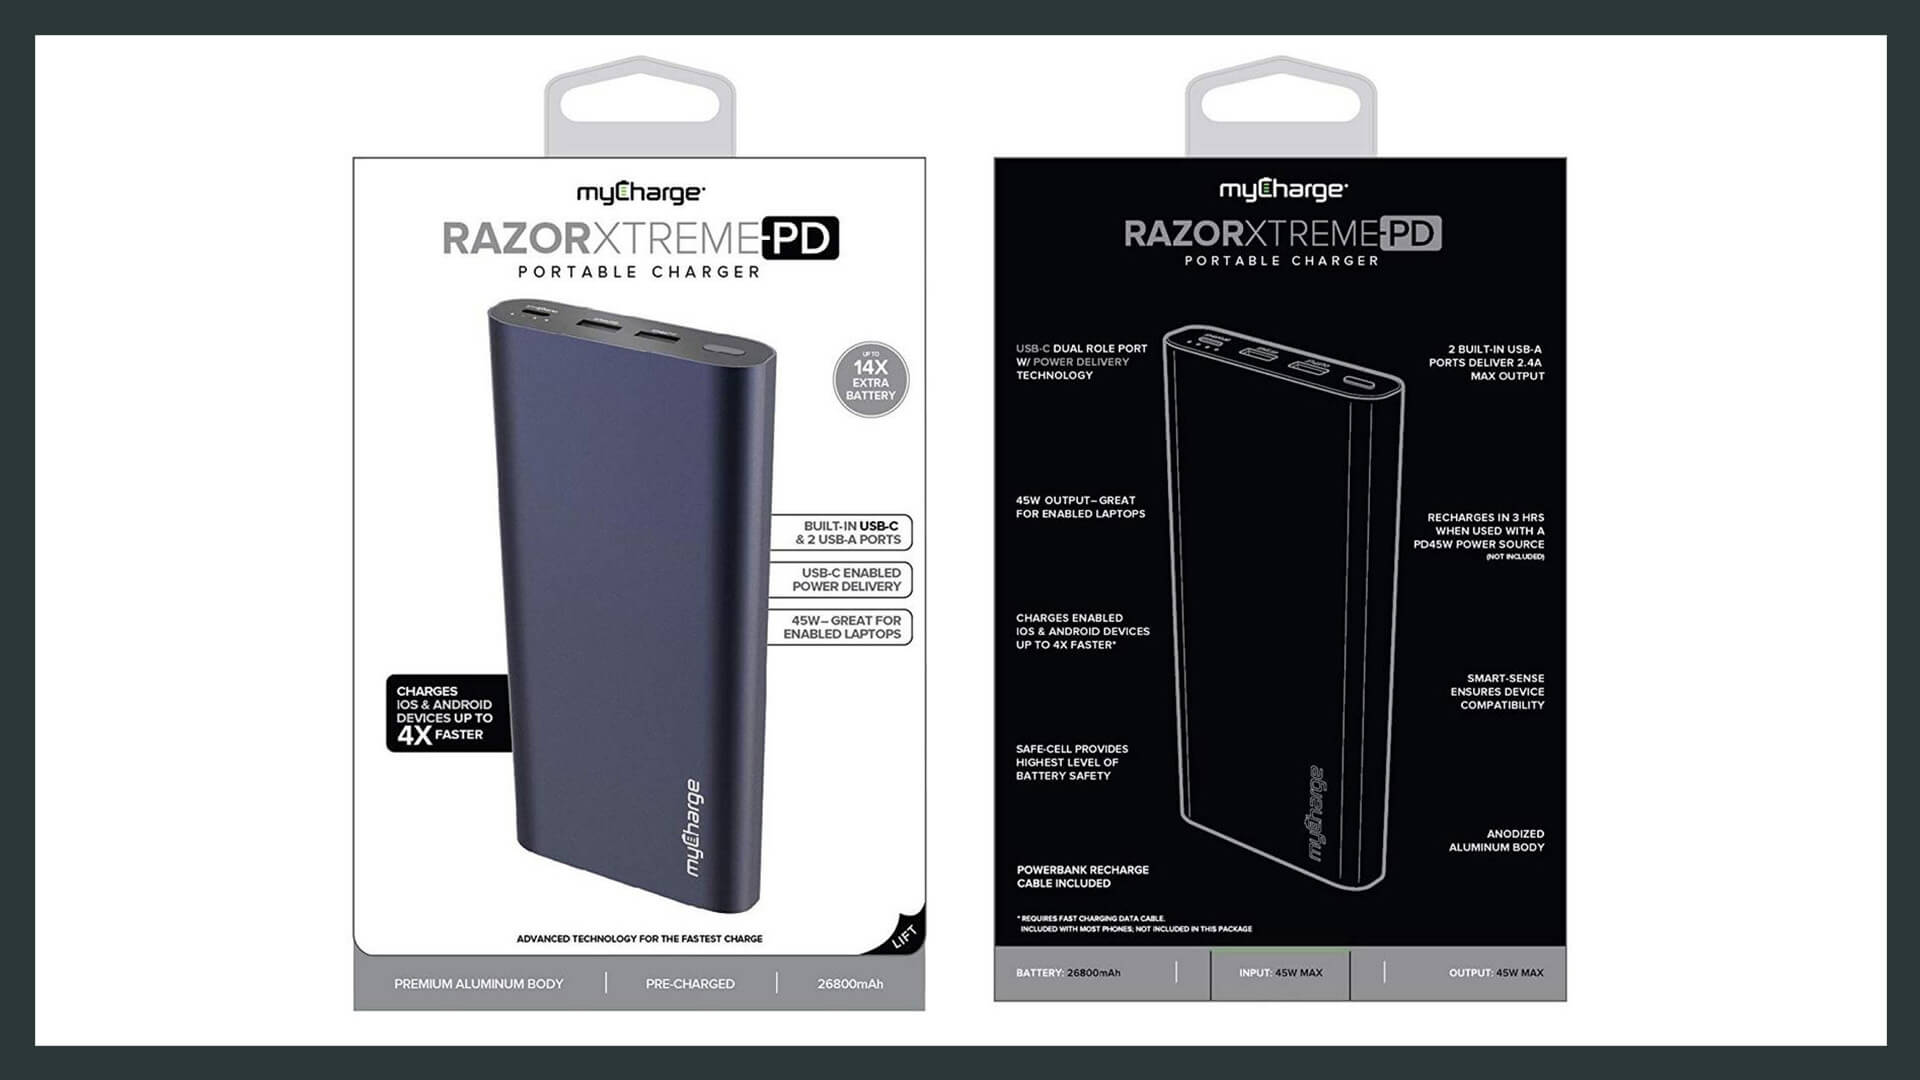 myCharge Razor Extreme PD Portable Charger - Review